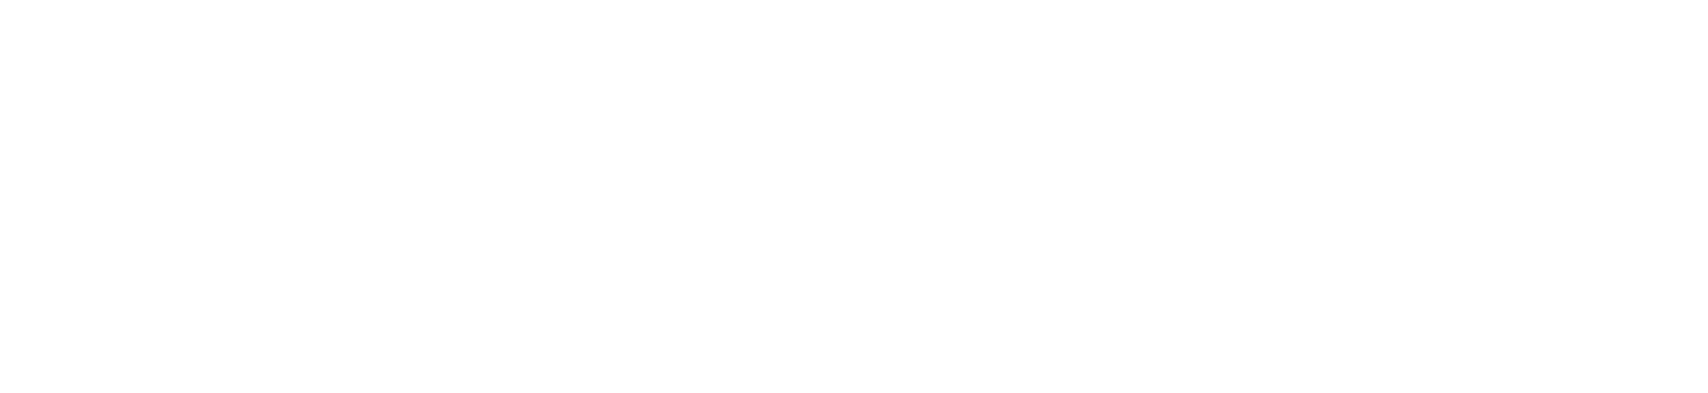 Fun and Fitness